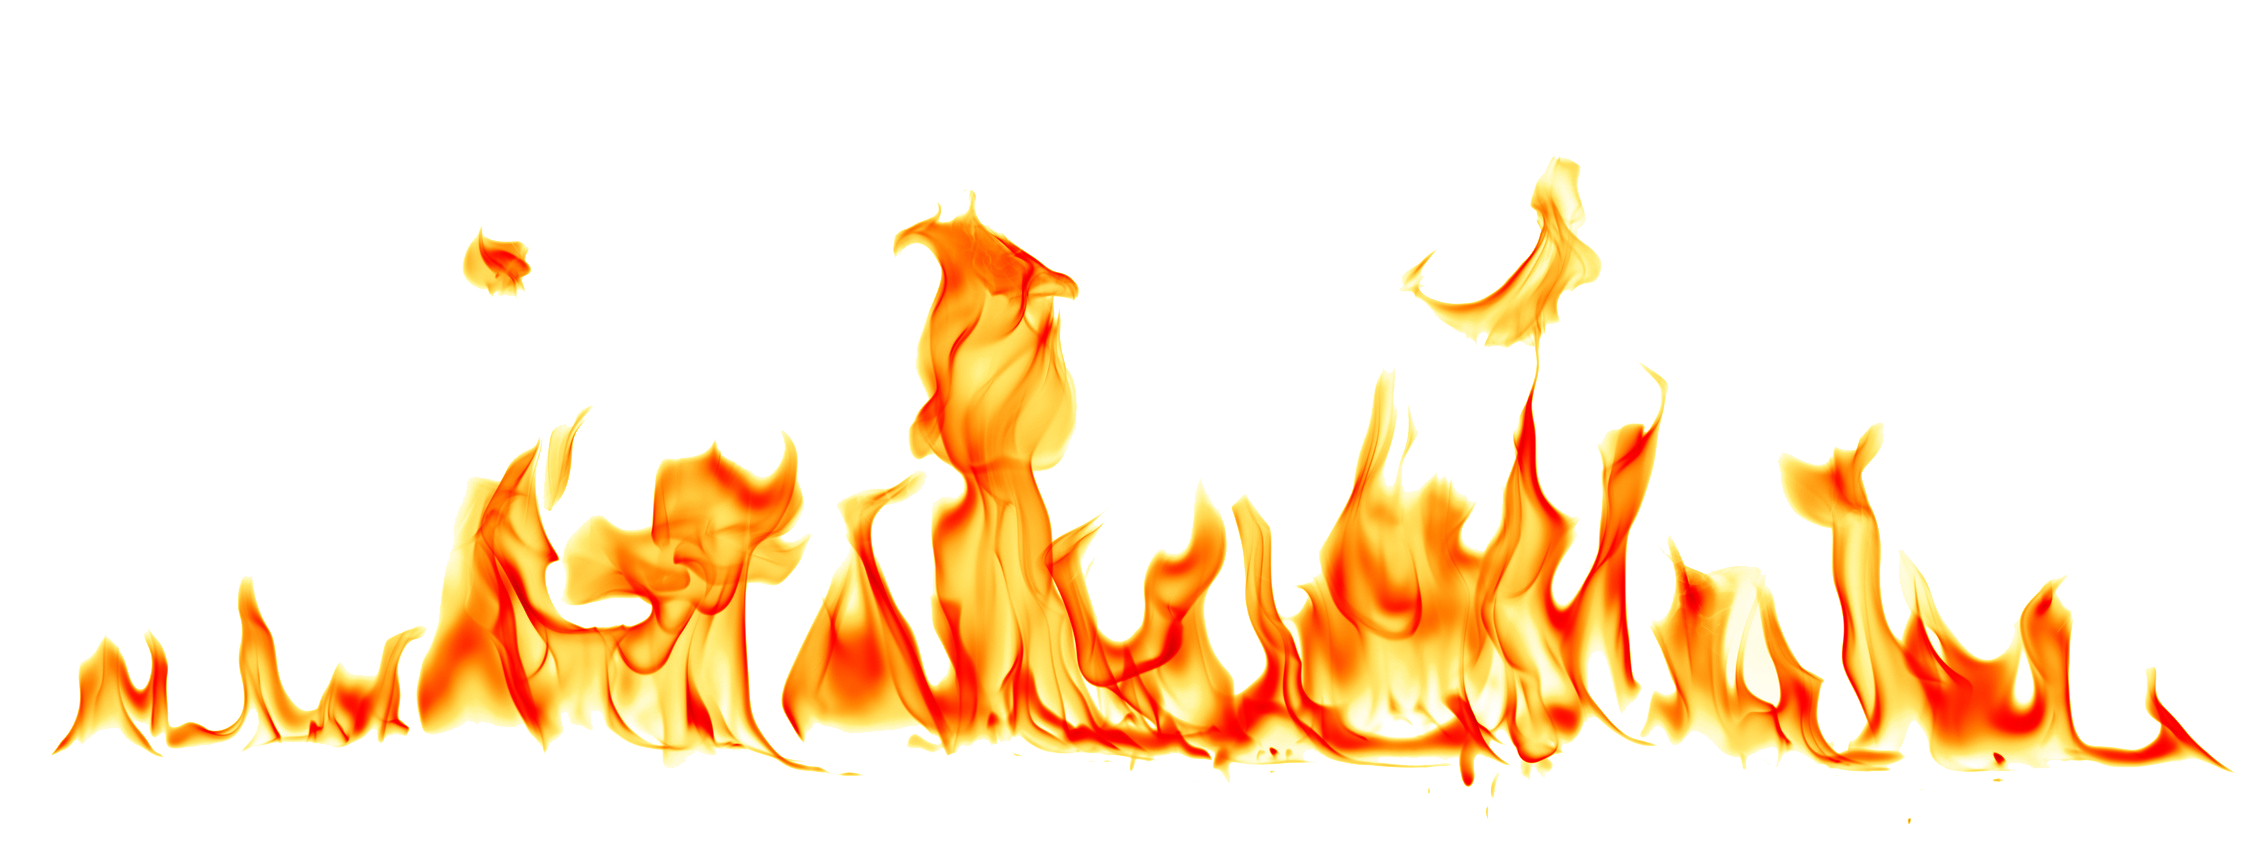 Png fire. Flames transparent free icons